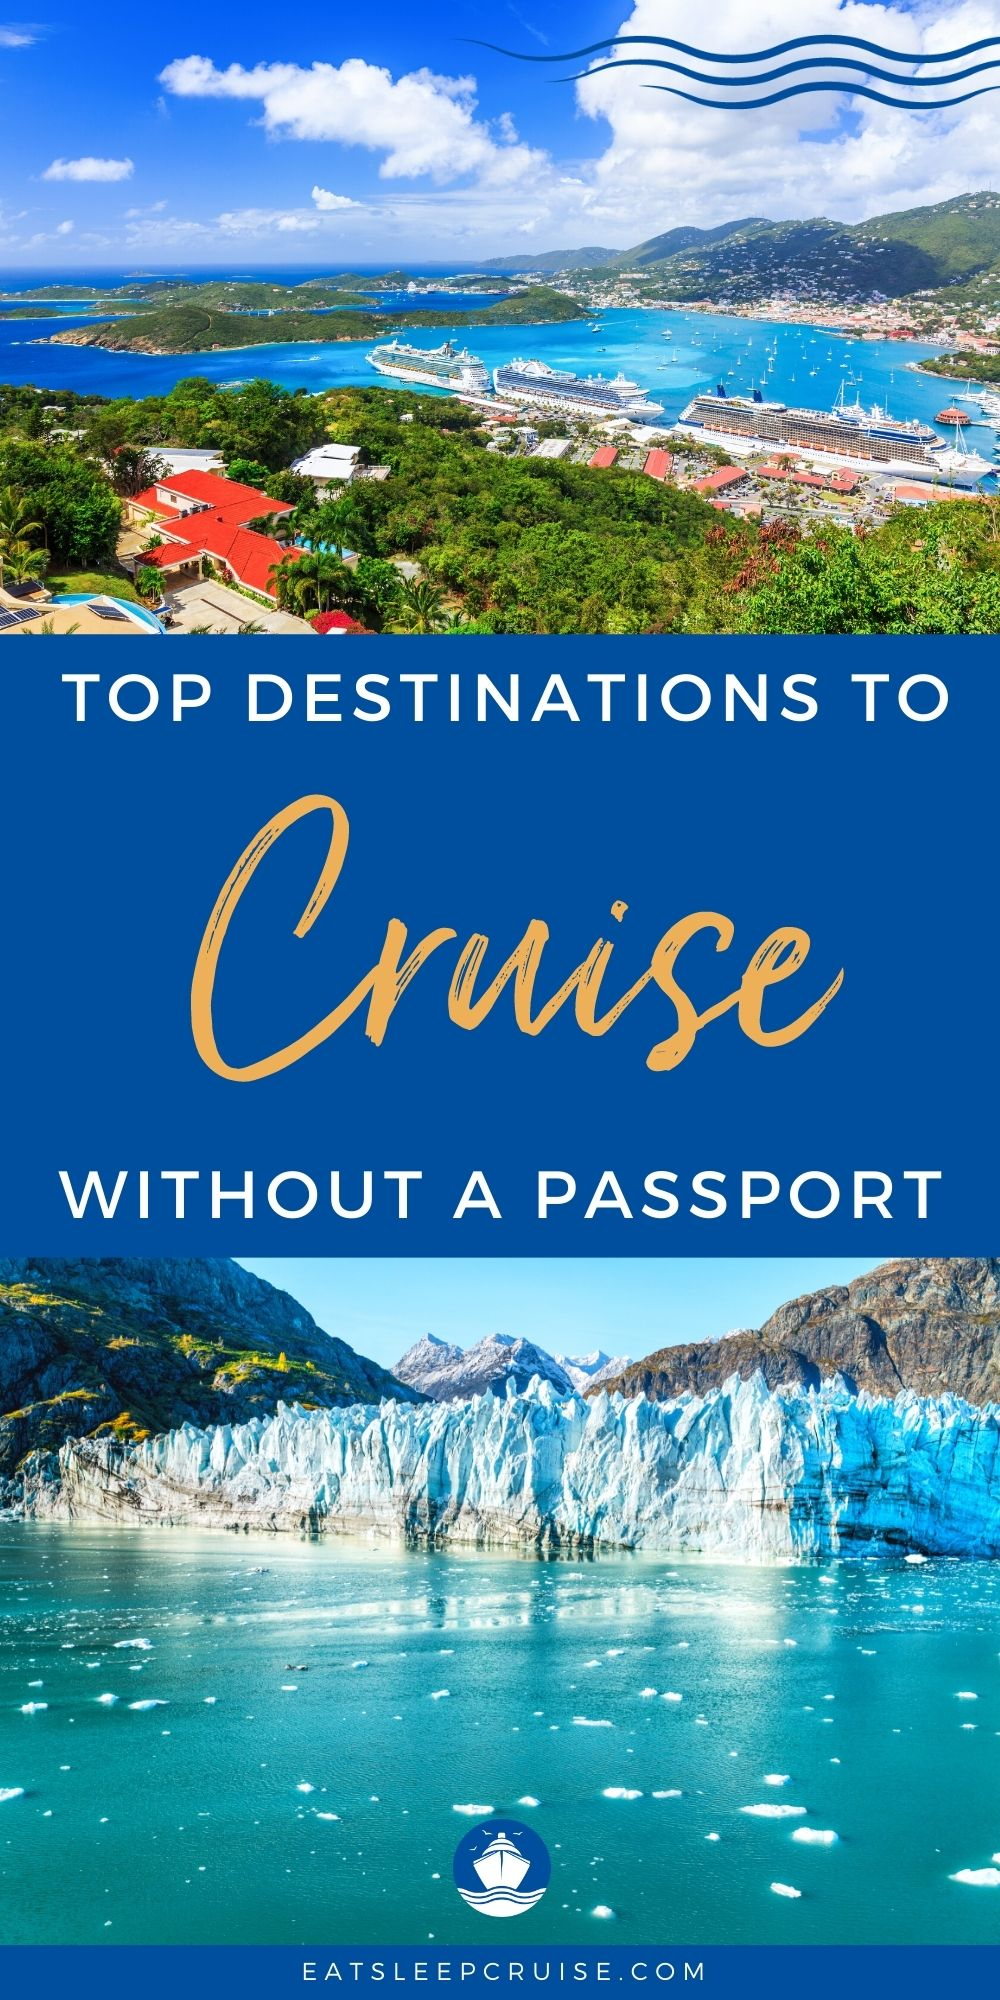 Top Places to Cruise Without a Passport